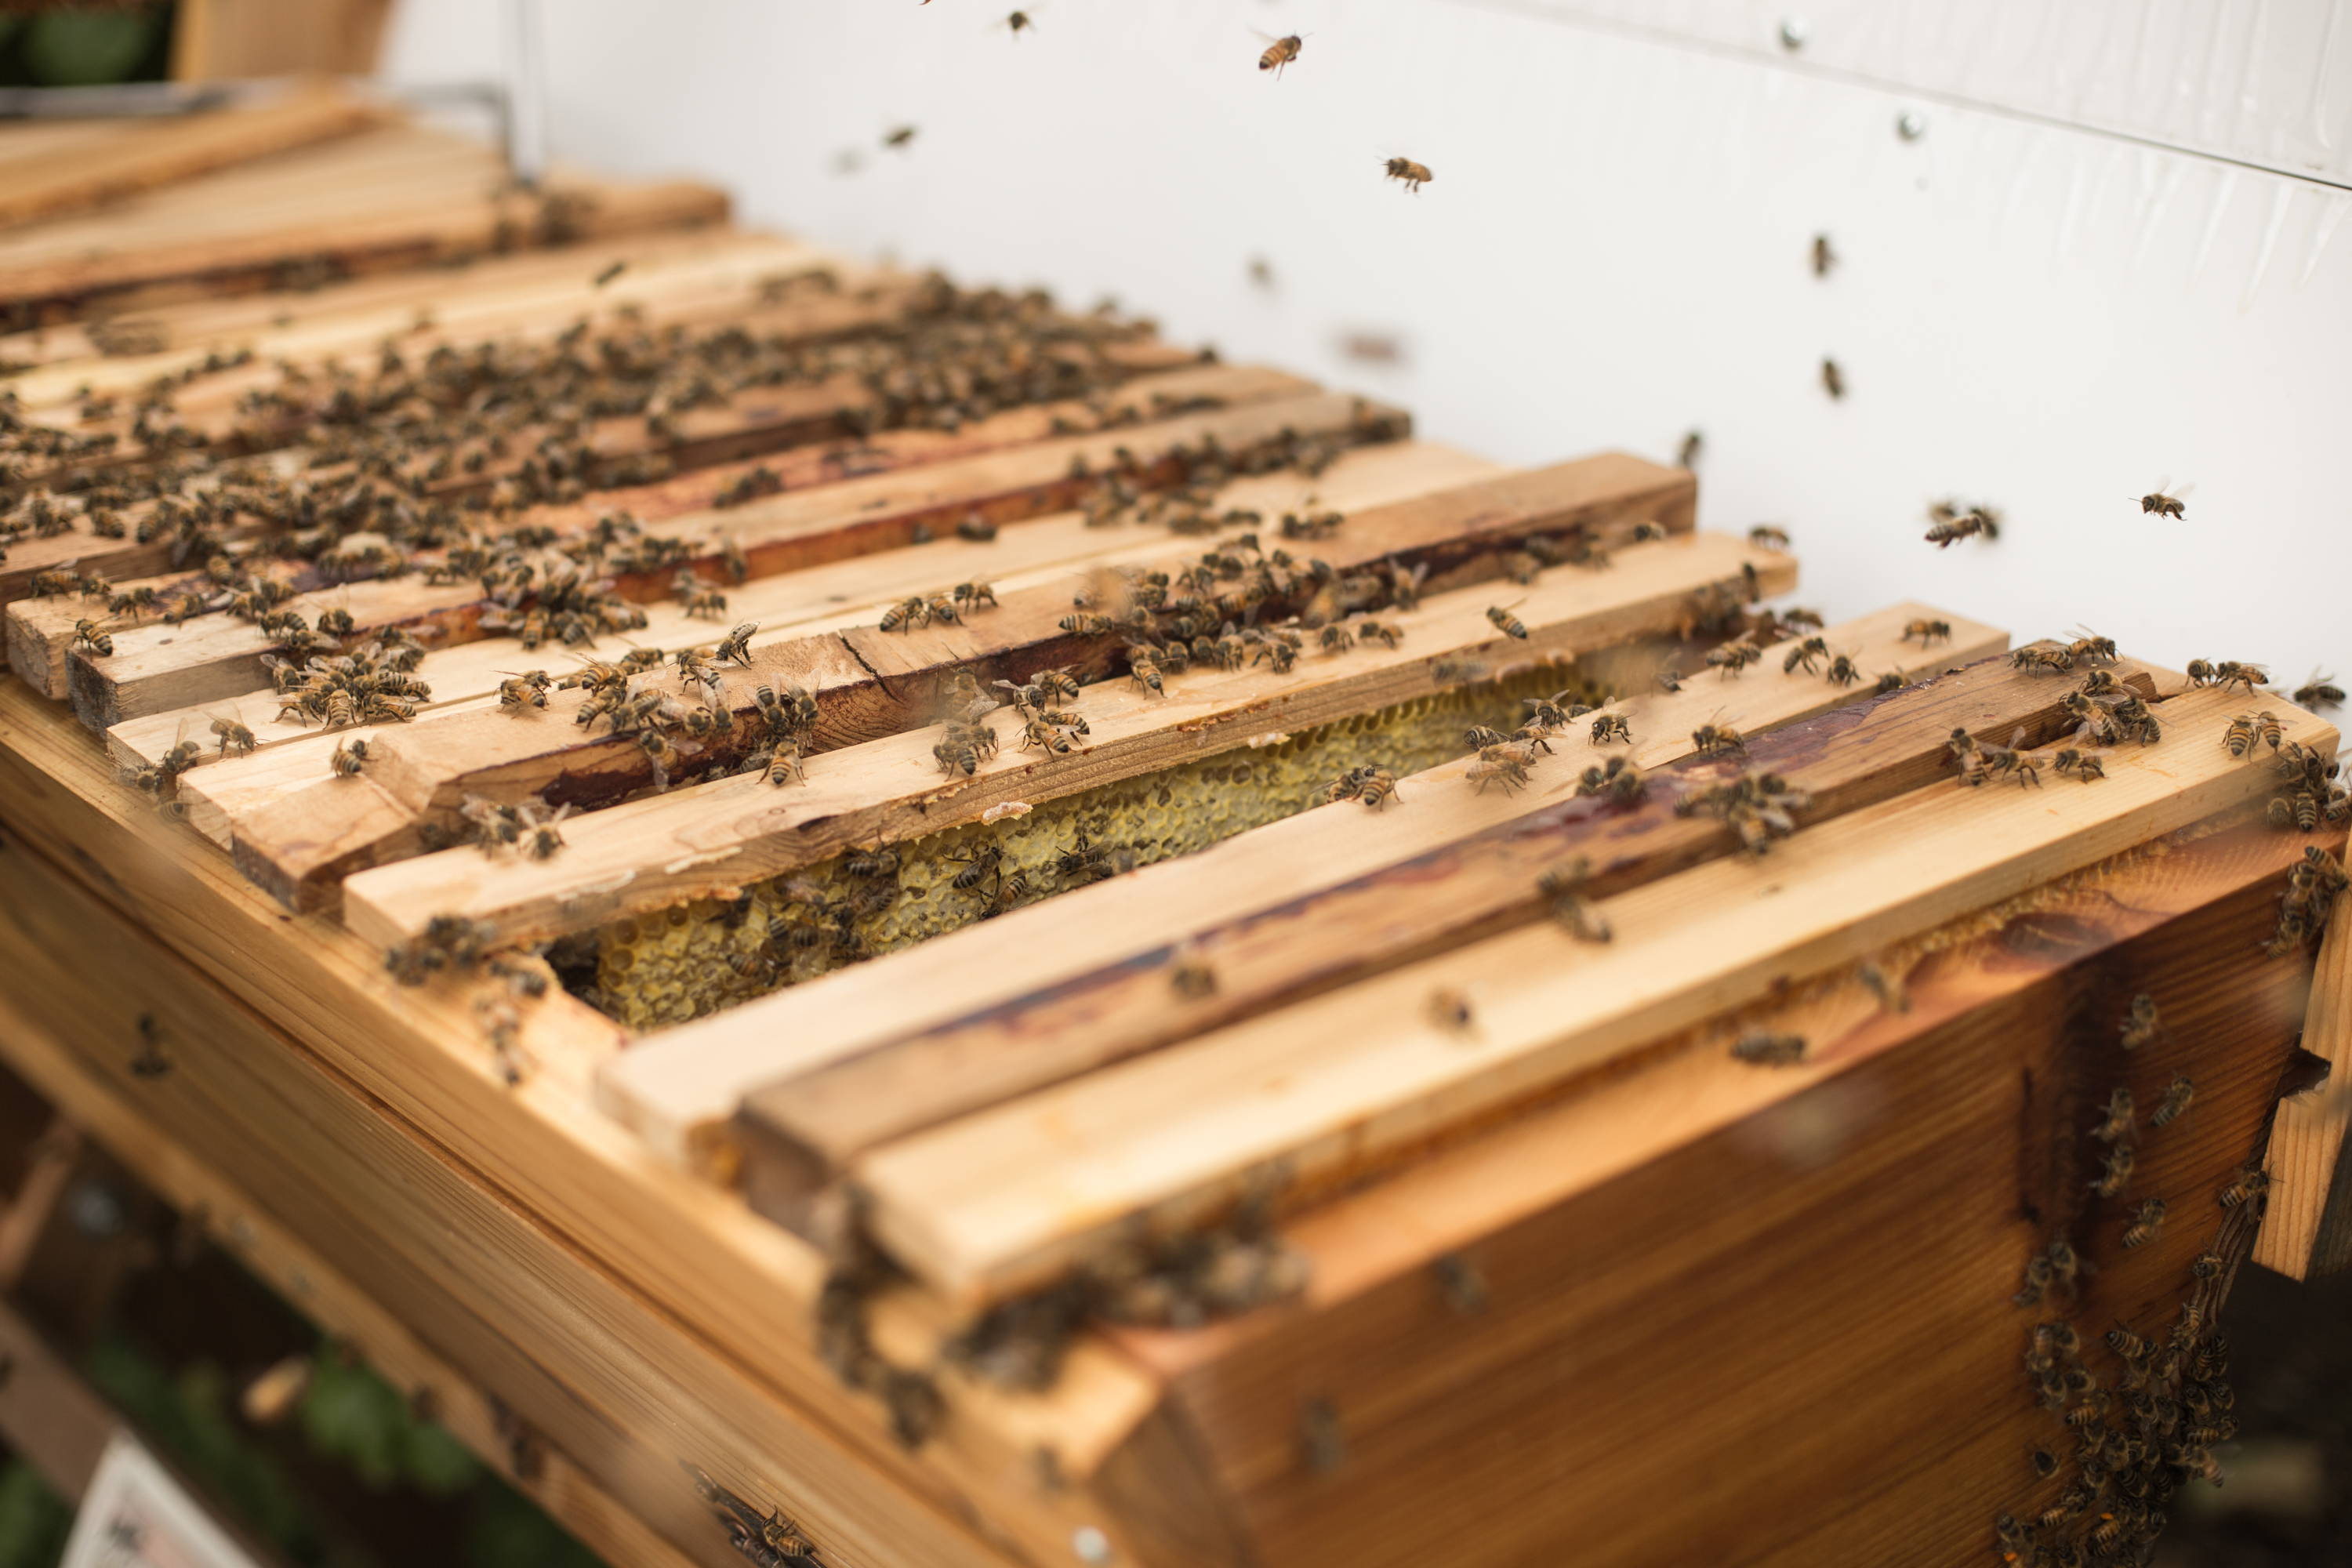 Top Bar Hives Are One Of The Oldest Hive Types. Modern Designs Have Evolved  From Felled Logs In Nature Being Populated By Feral Colonies.